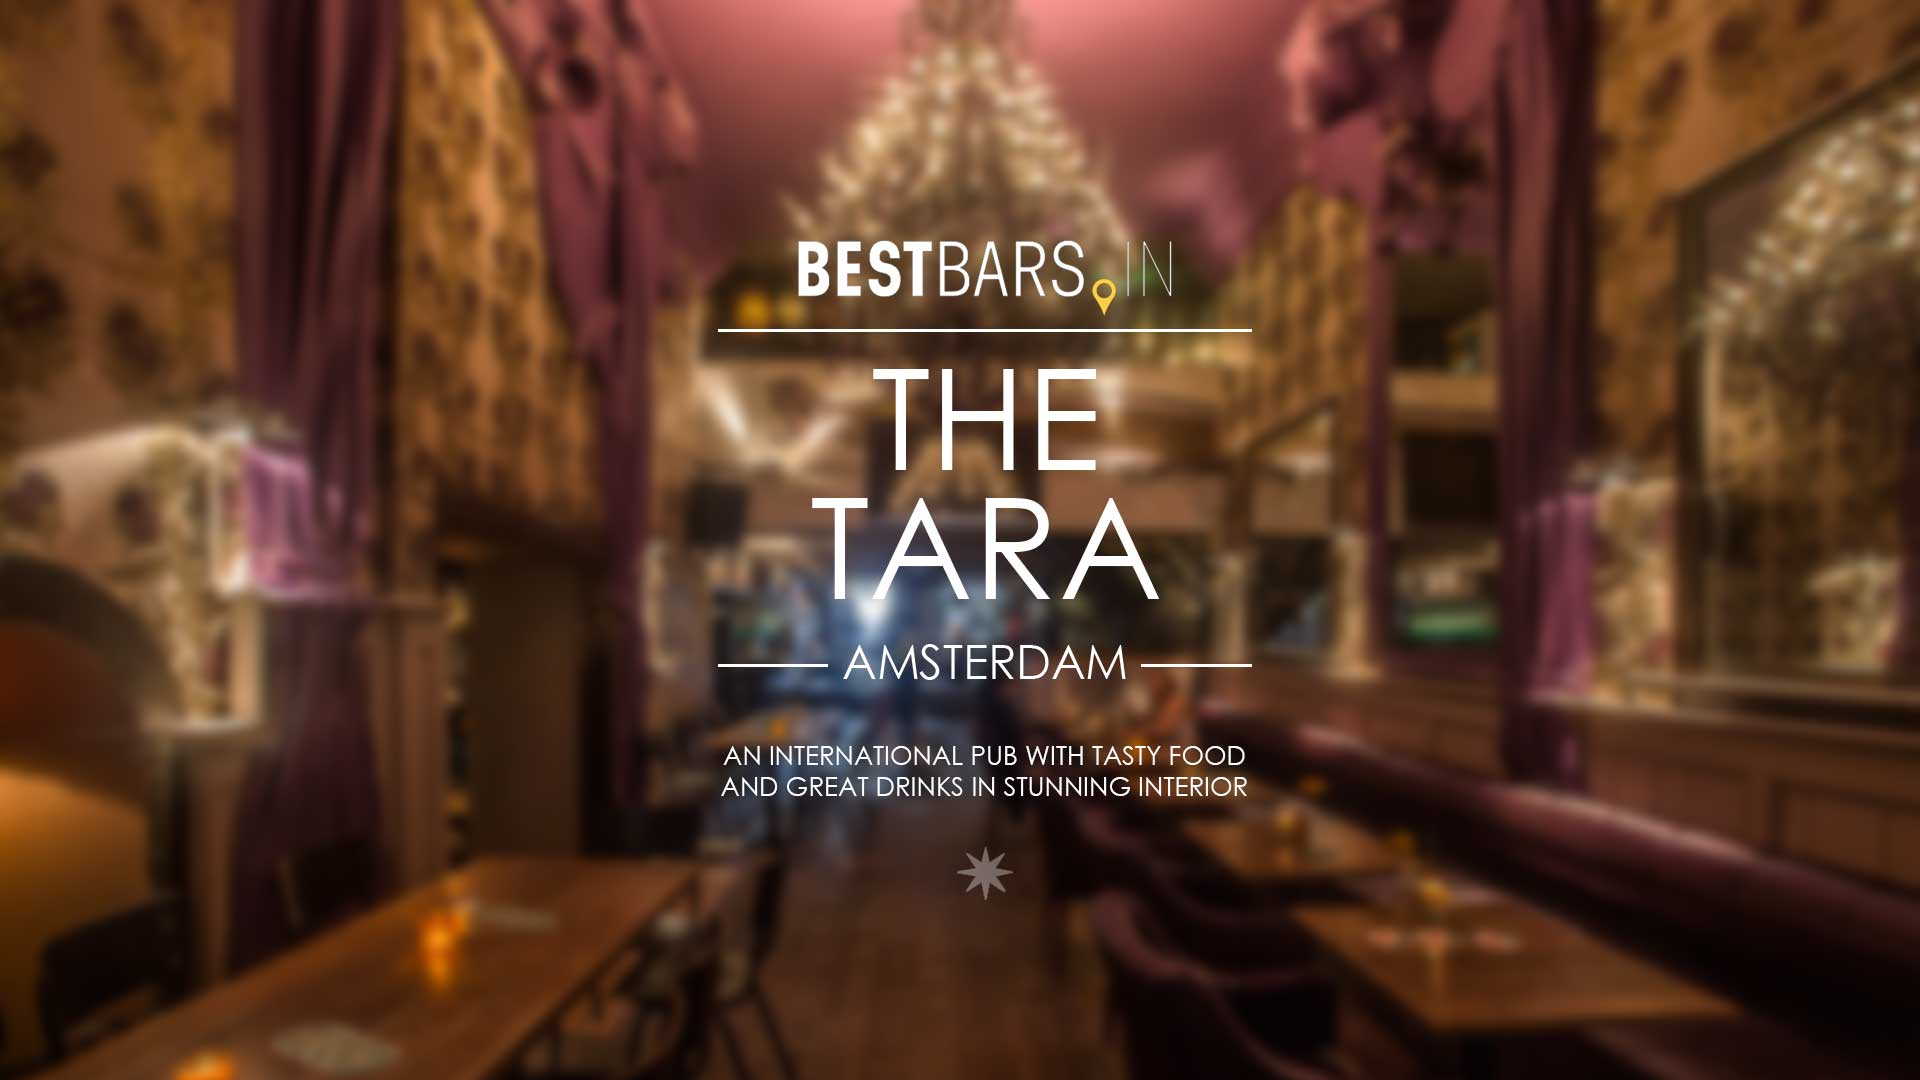 The Tara - an international pub in Amsterdam city center